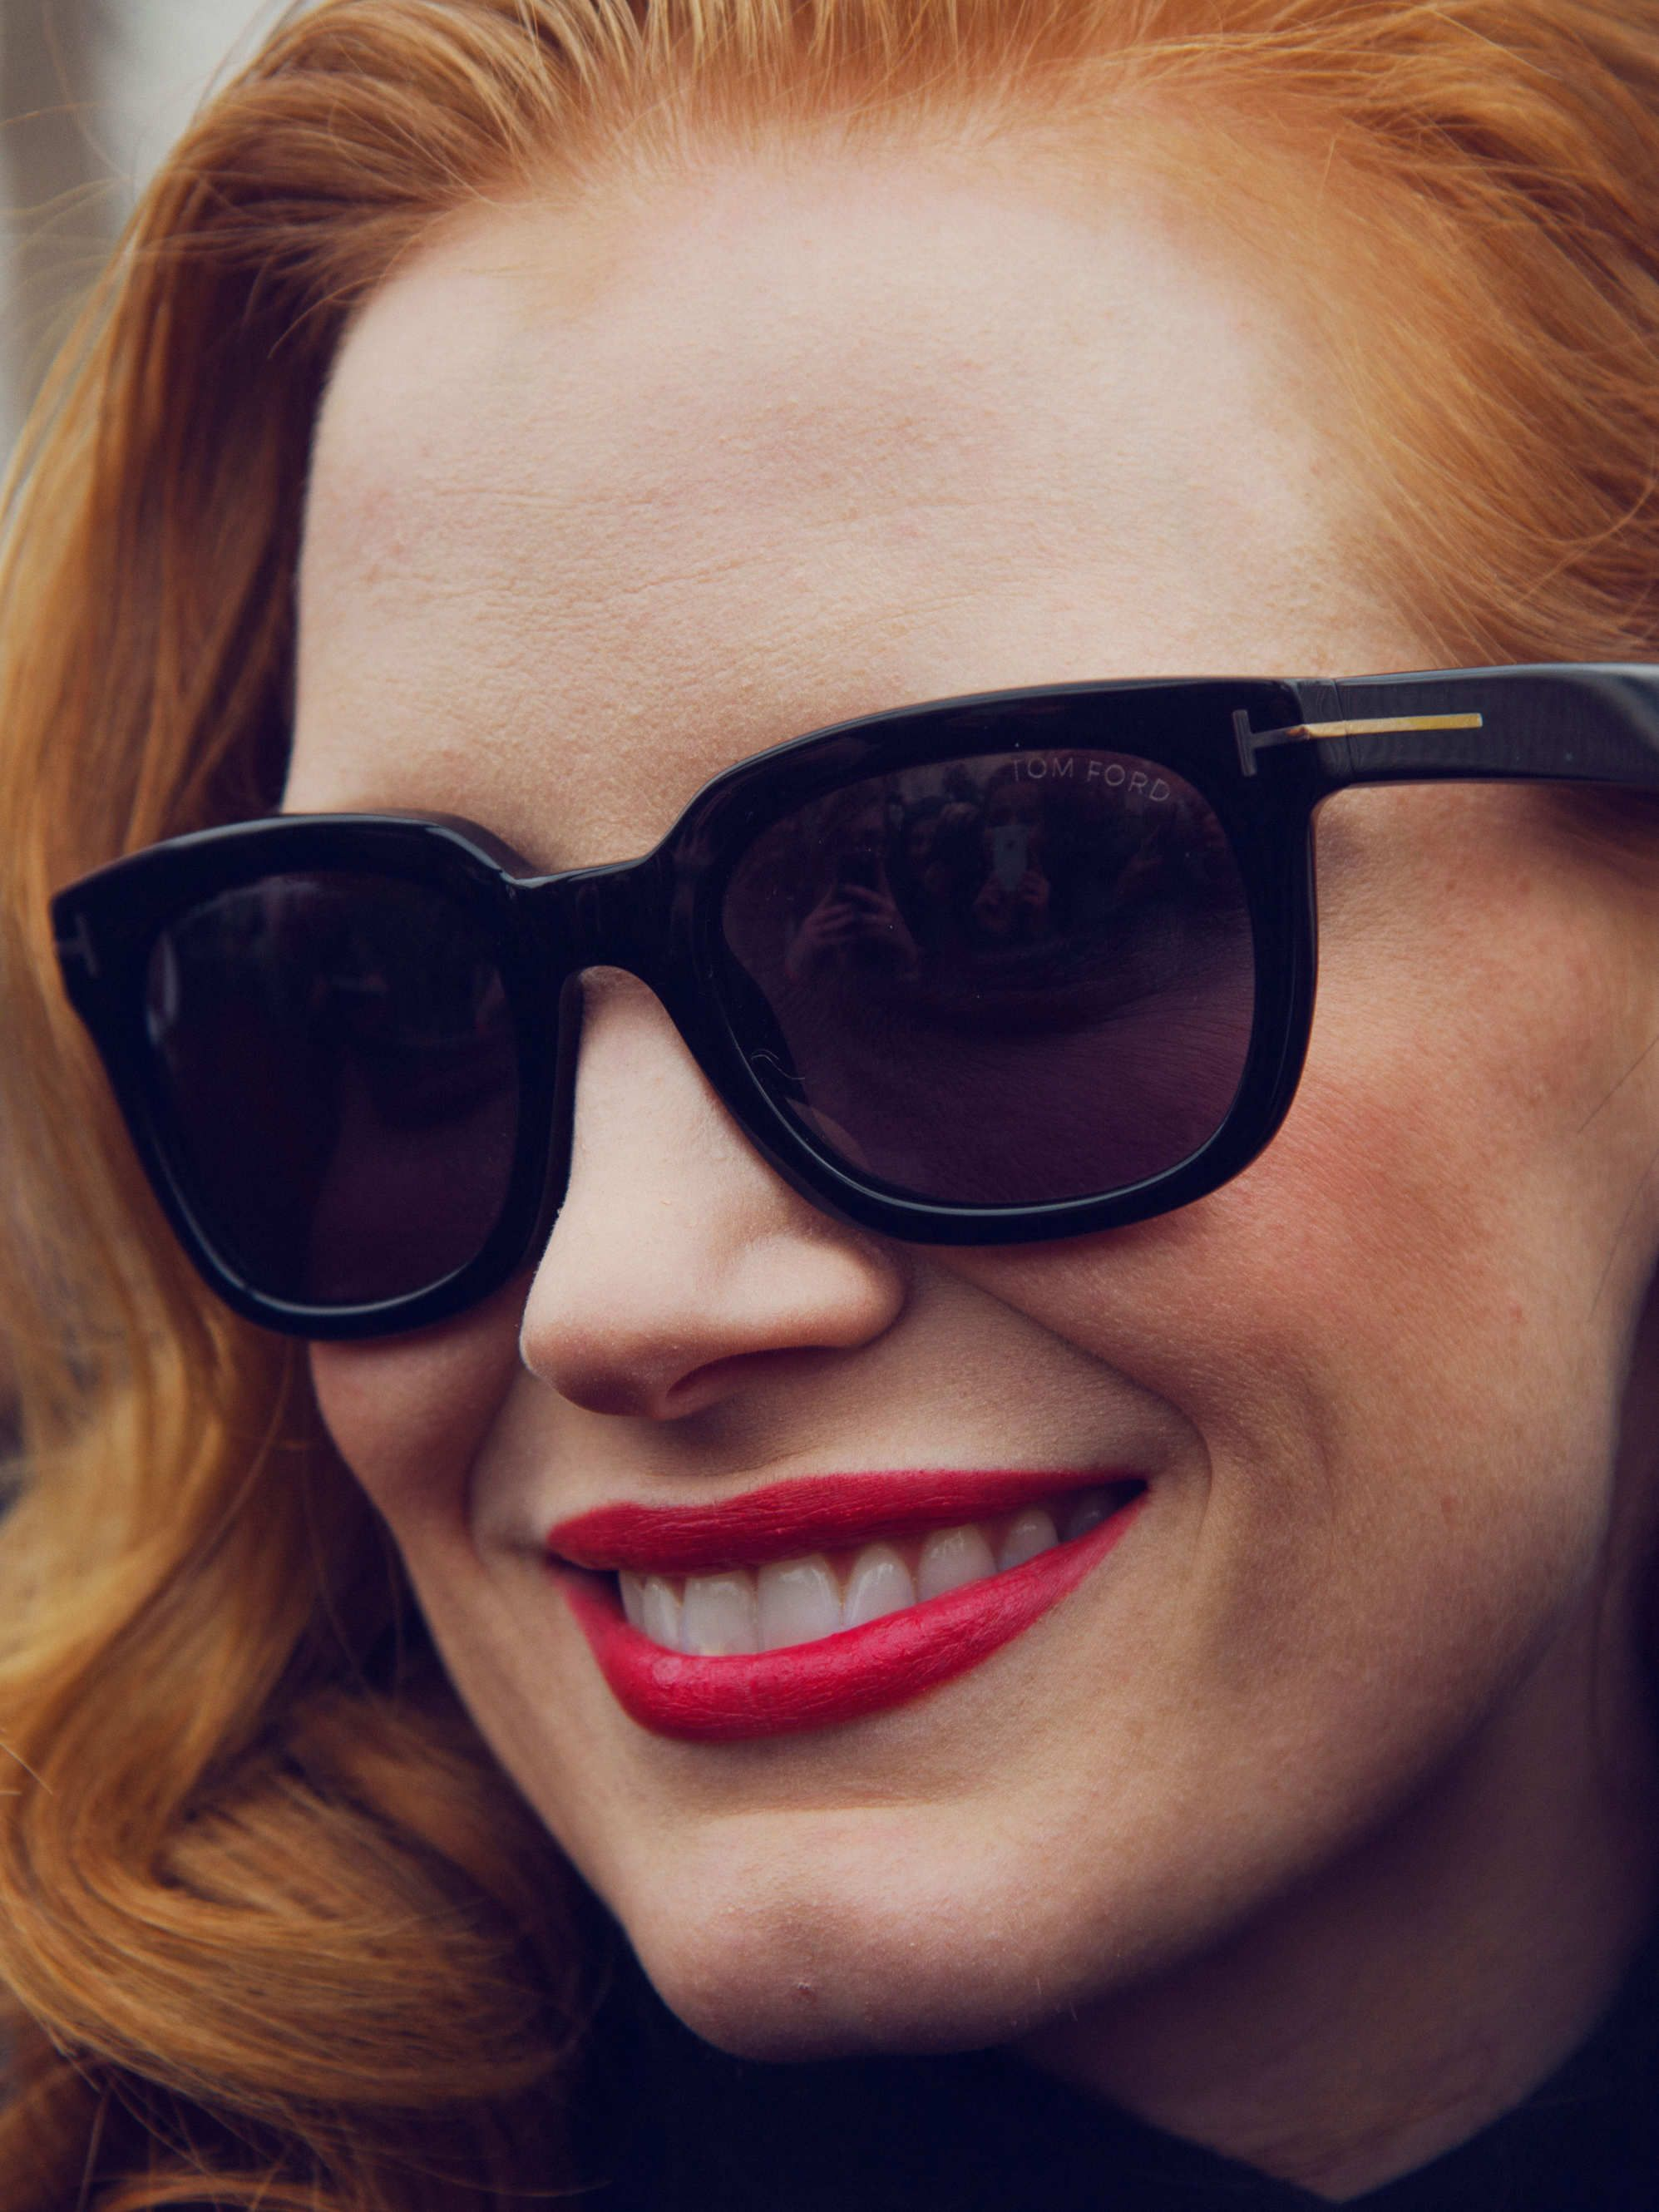 a74e64f0615e These Tom Ford Campbell sunnies are perfection! So classic!